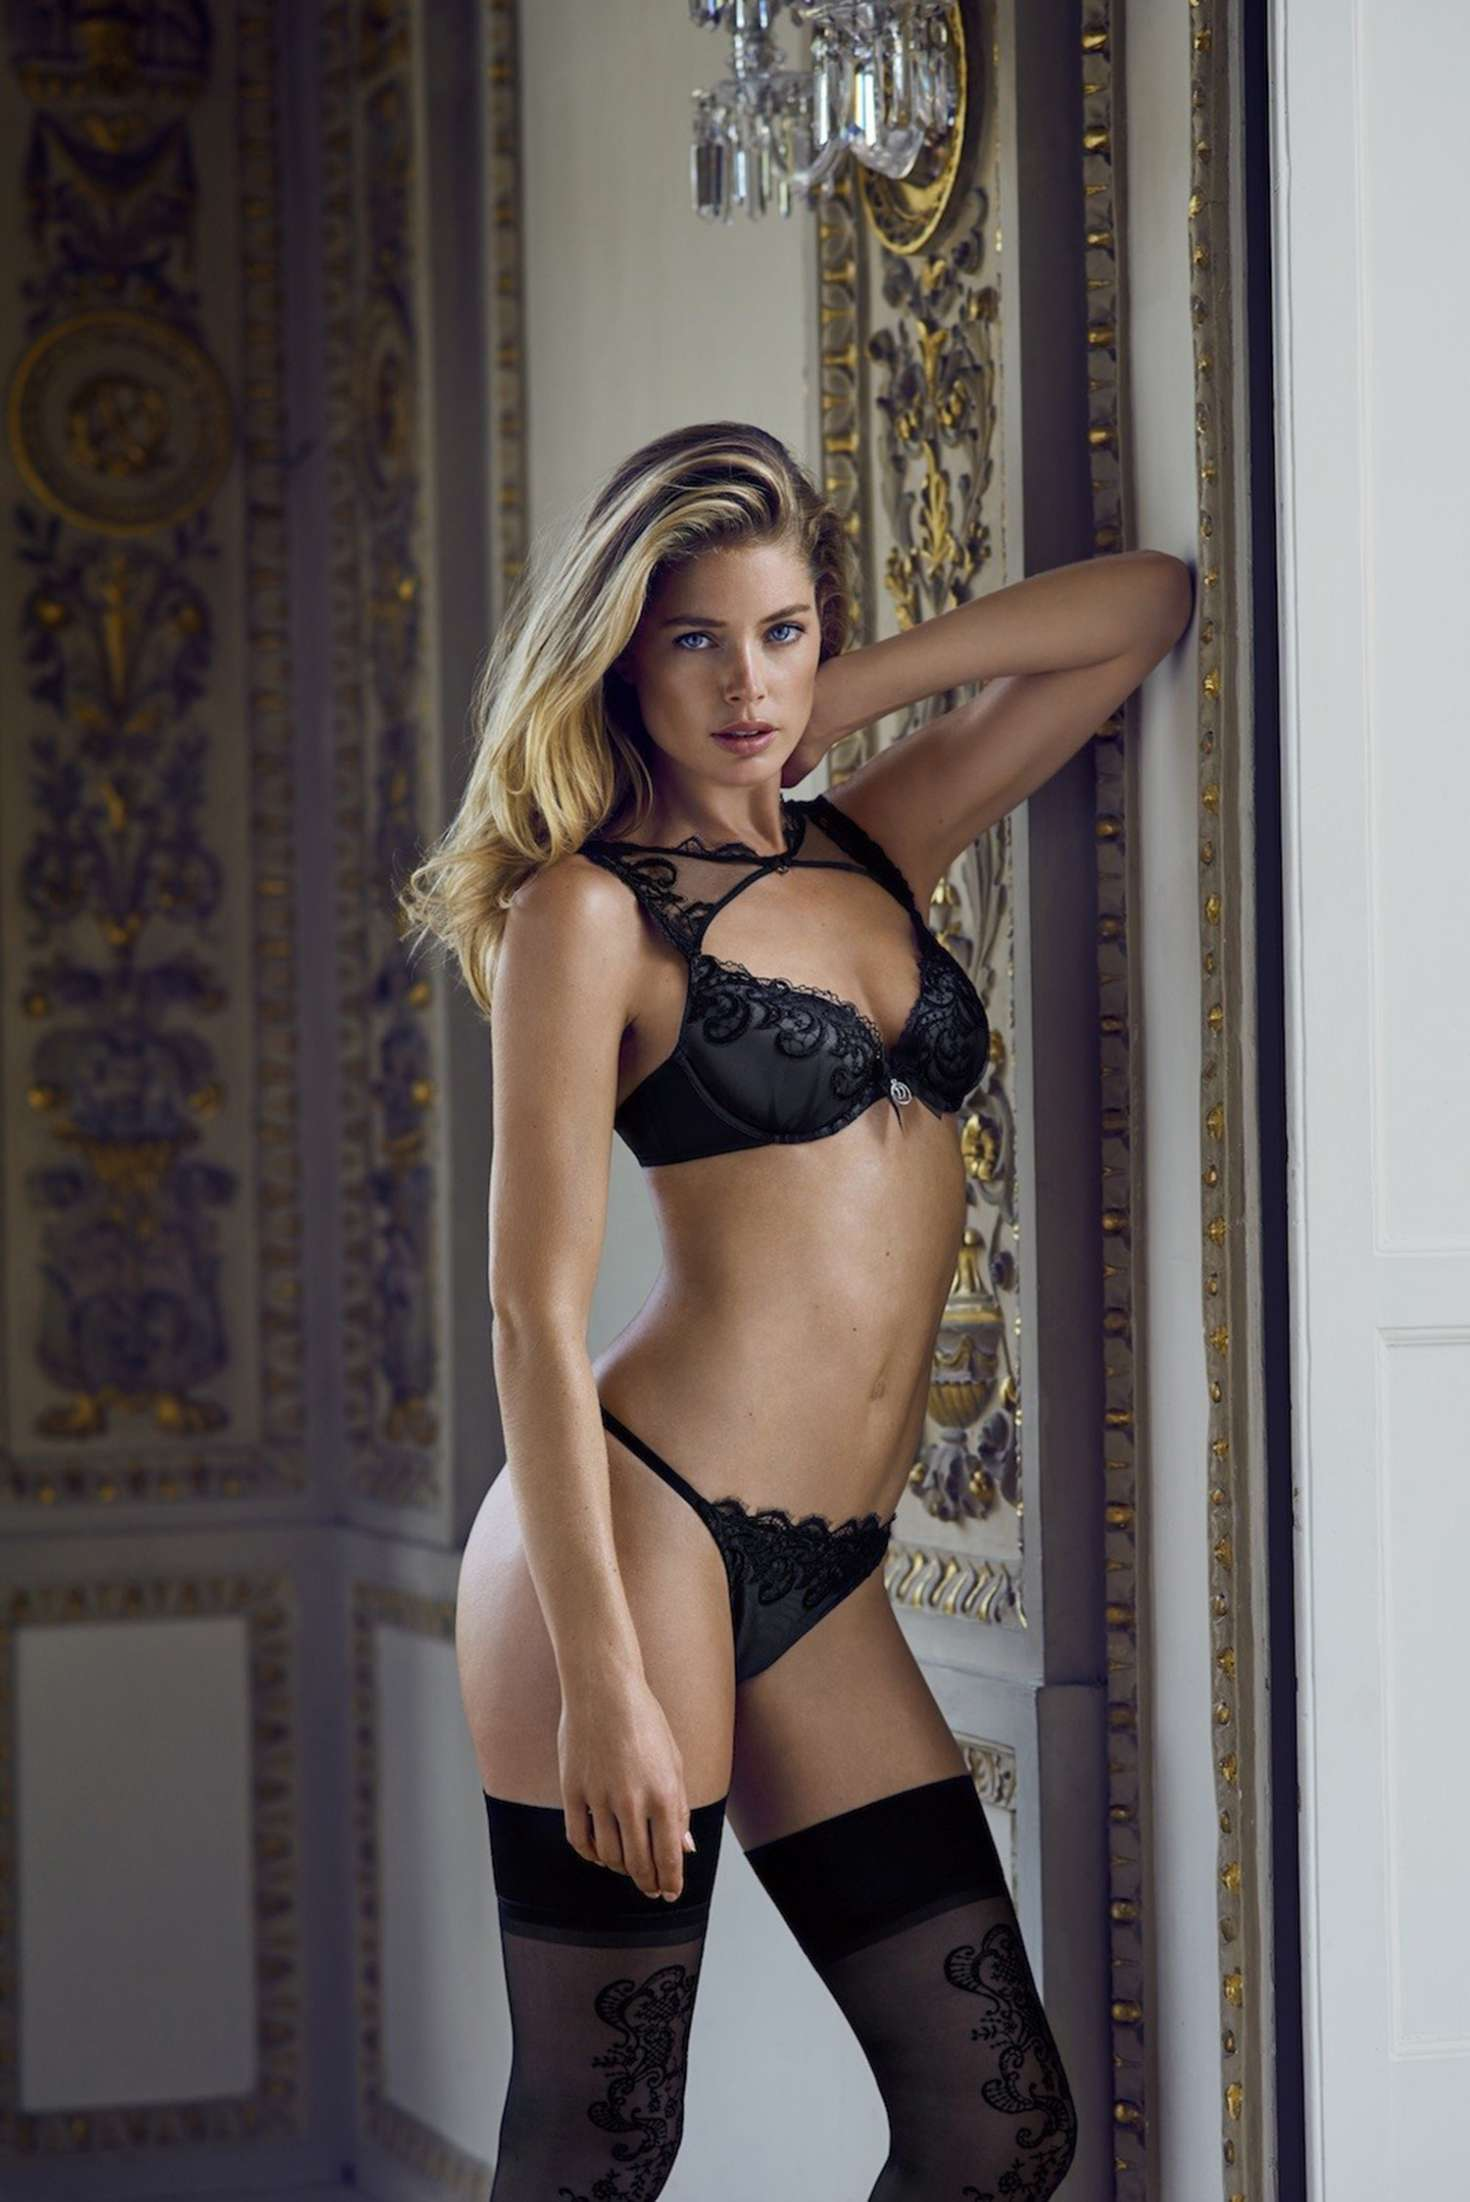 Doutzen Kroes – Hunkemoller Photoshoot 2016   Doutzen-Kroes:-Hunkemoller-Photoshoot-2016--07